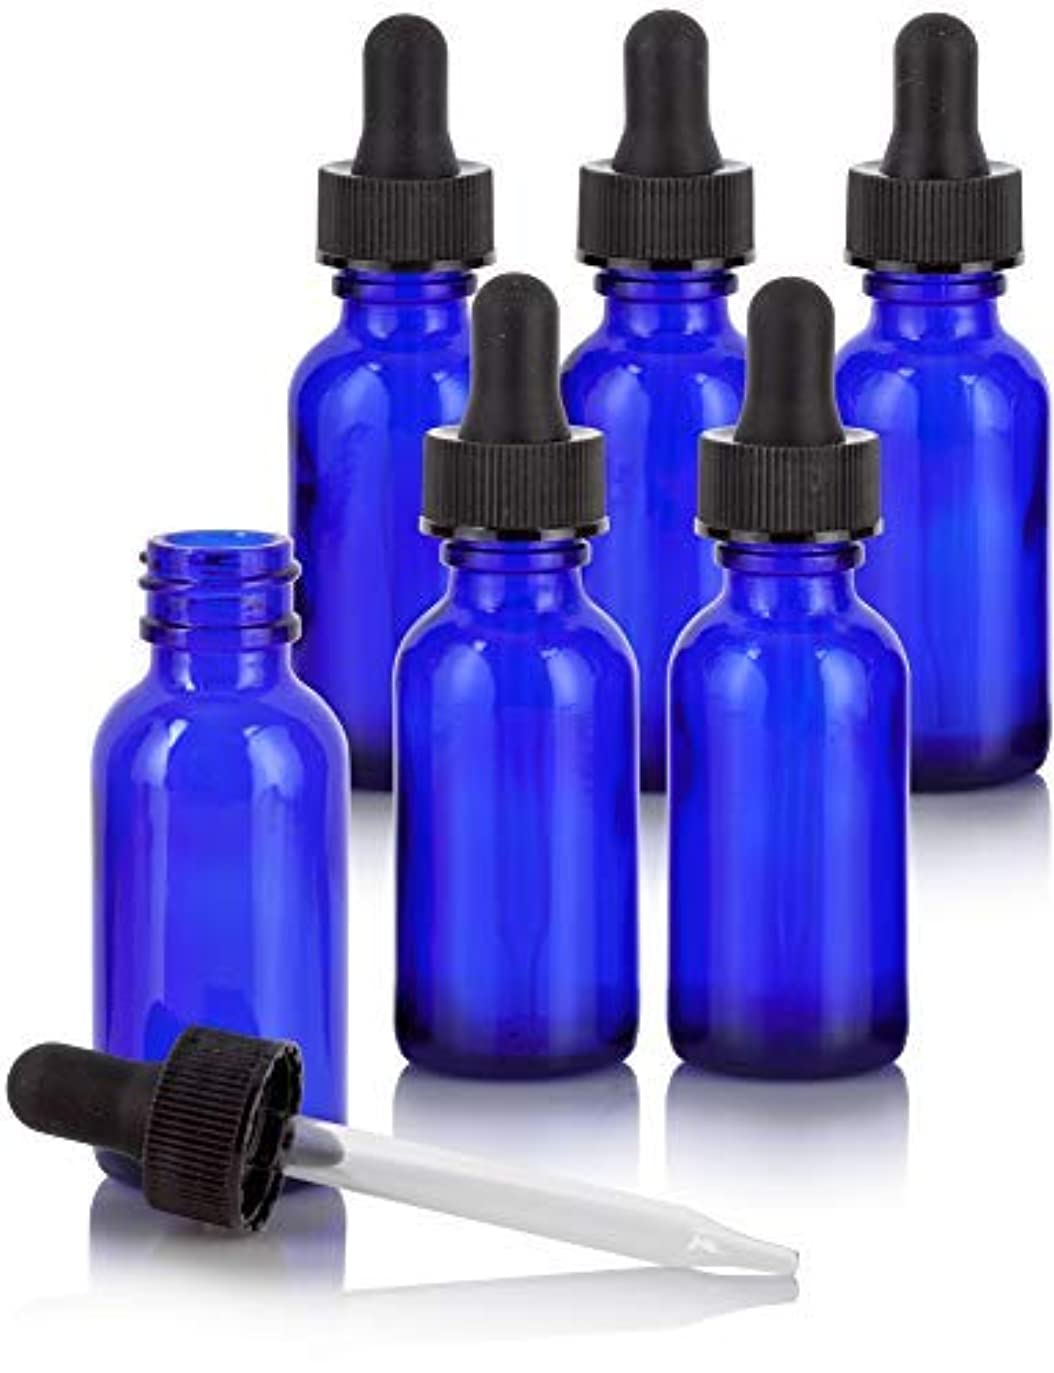 1 oz Cobalt Blue Glass Boston Round Dropper Bottle (6 Pack) + Funnel and Labels for Essential Oils, Aromatherapy...